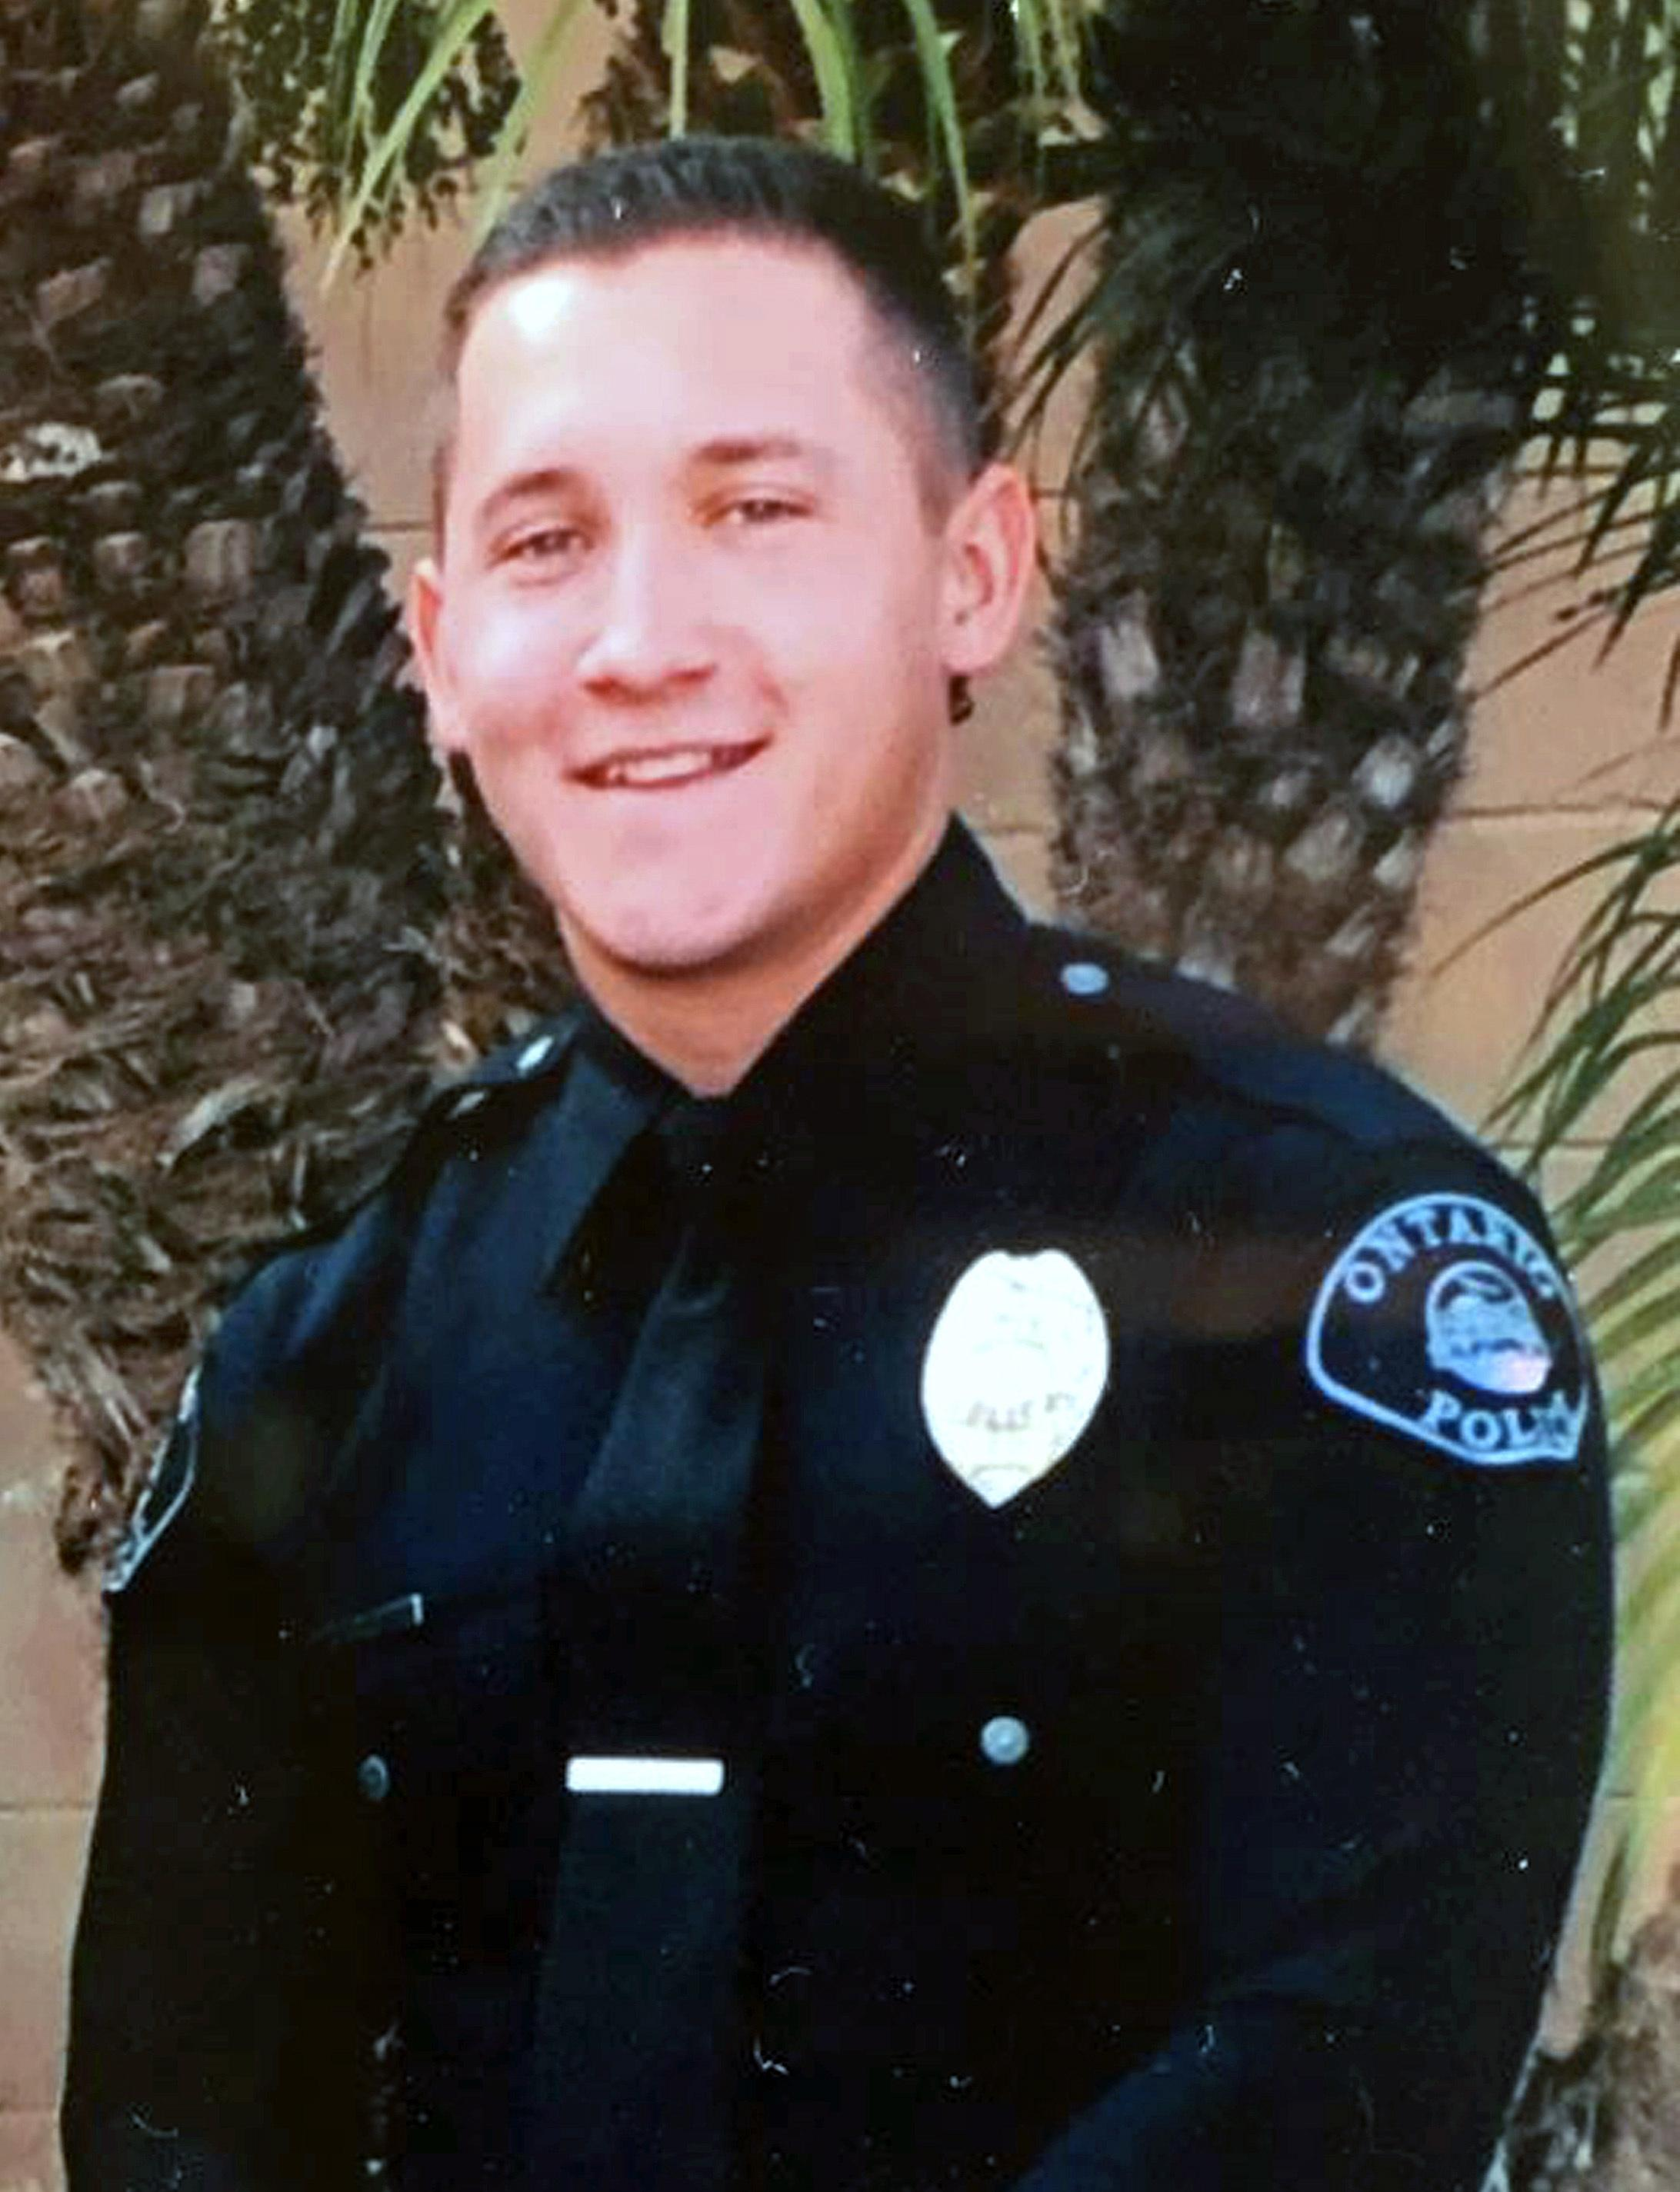 This undated photo provided by the Ontario Police Department shows Officer Michael Gracia. On Sunday, Oct. 1, 2017, Gracia was off duty when he was injured during a mass shooting at a concert in Las Vegas. (Ontario Police Department via AP)